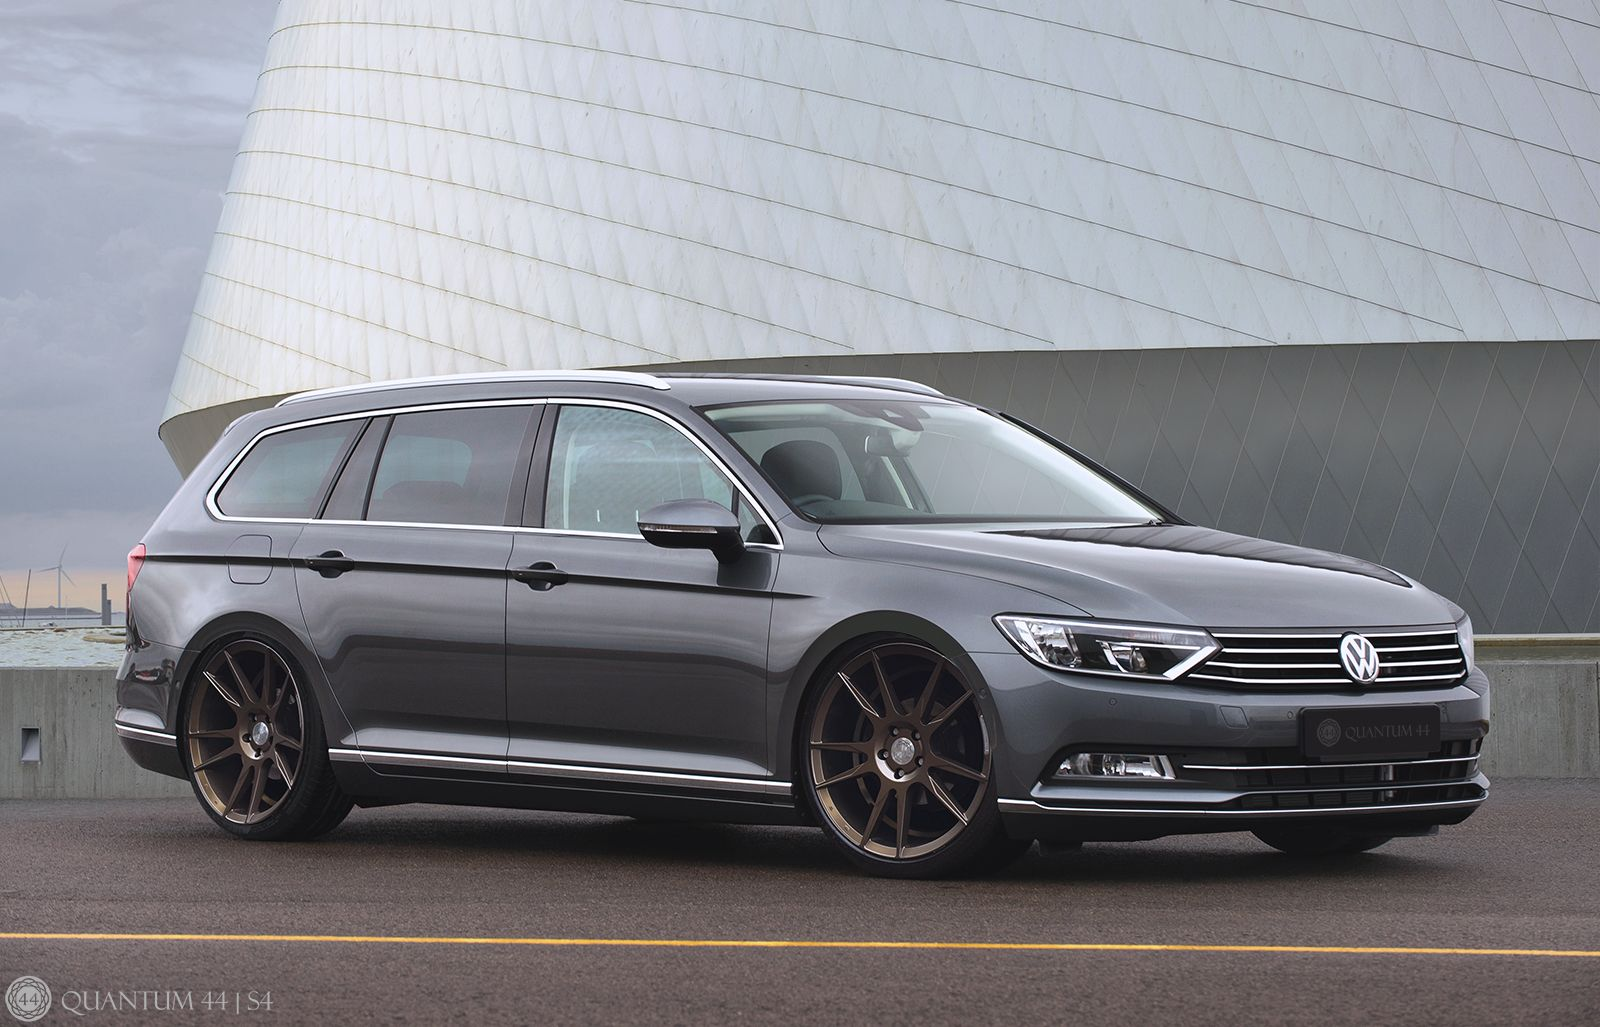 volkswagen passat estate 2015 b8 variant carros. Black Bedroom Furniture Sets. Home Design Ideas